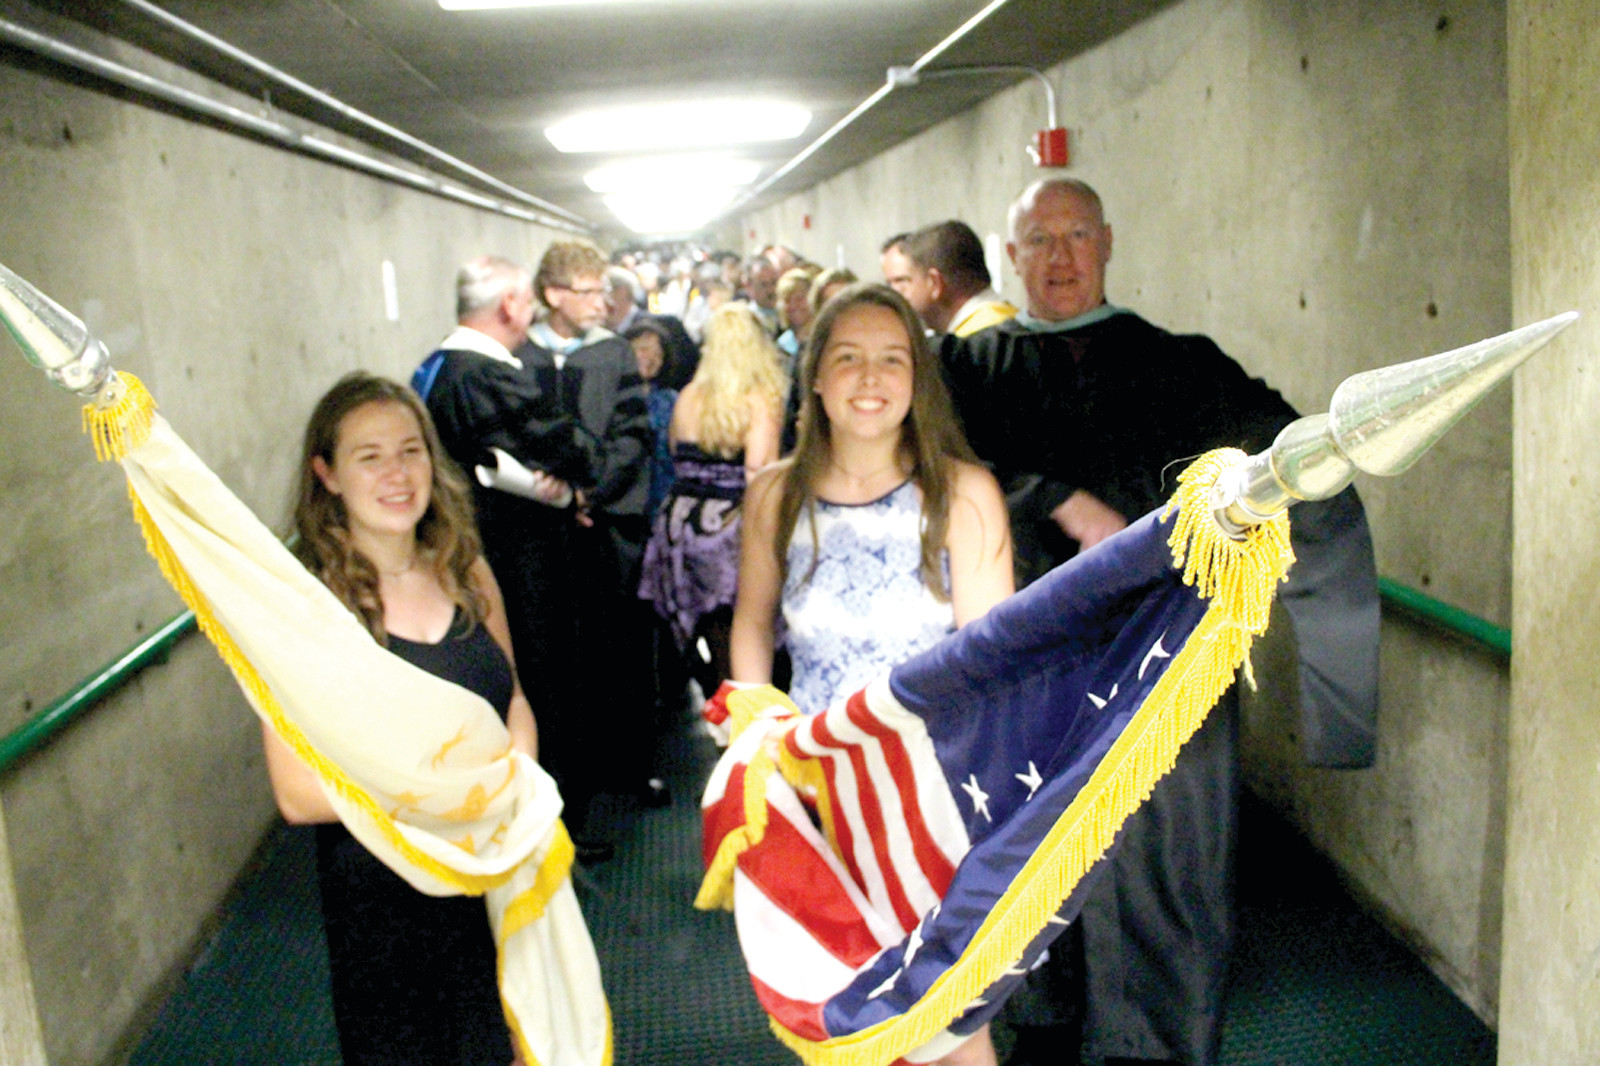 TAKING THE LEAD: With Principal Gerald Habershaw, the mayor and other officials behind them, flag bearers prepare to lead the procession into the CCRI field house.